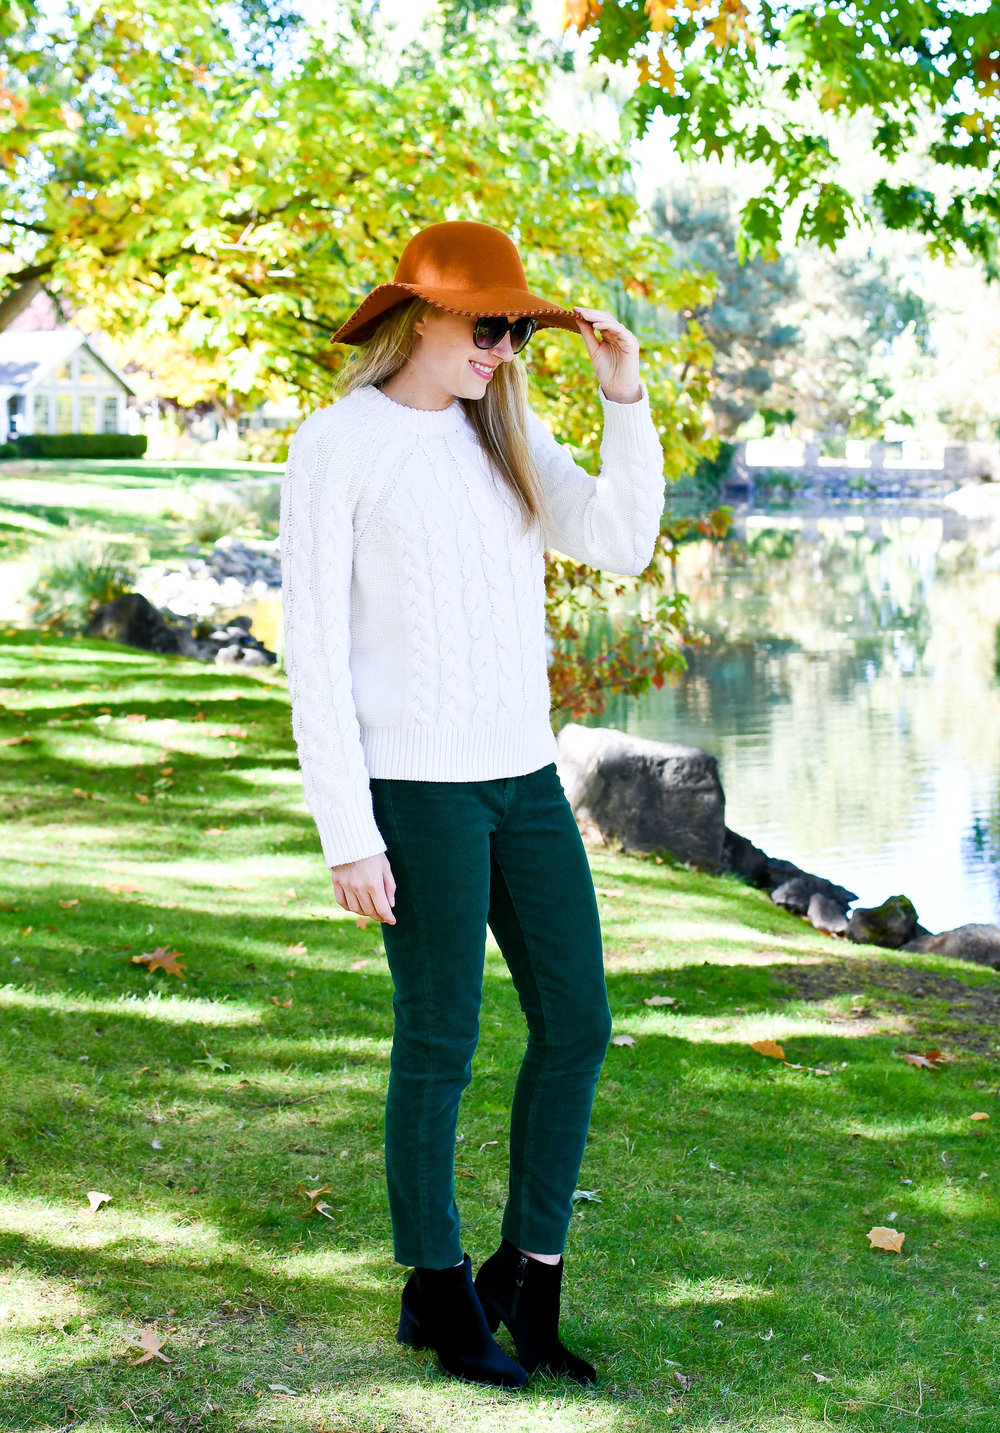 forest-green-corduroy-pants-outfit.jpg